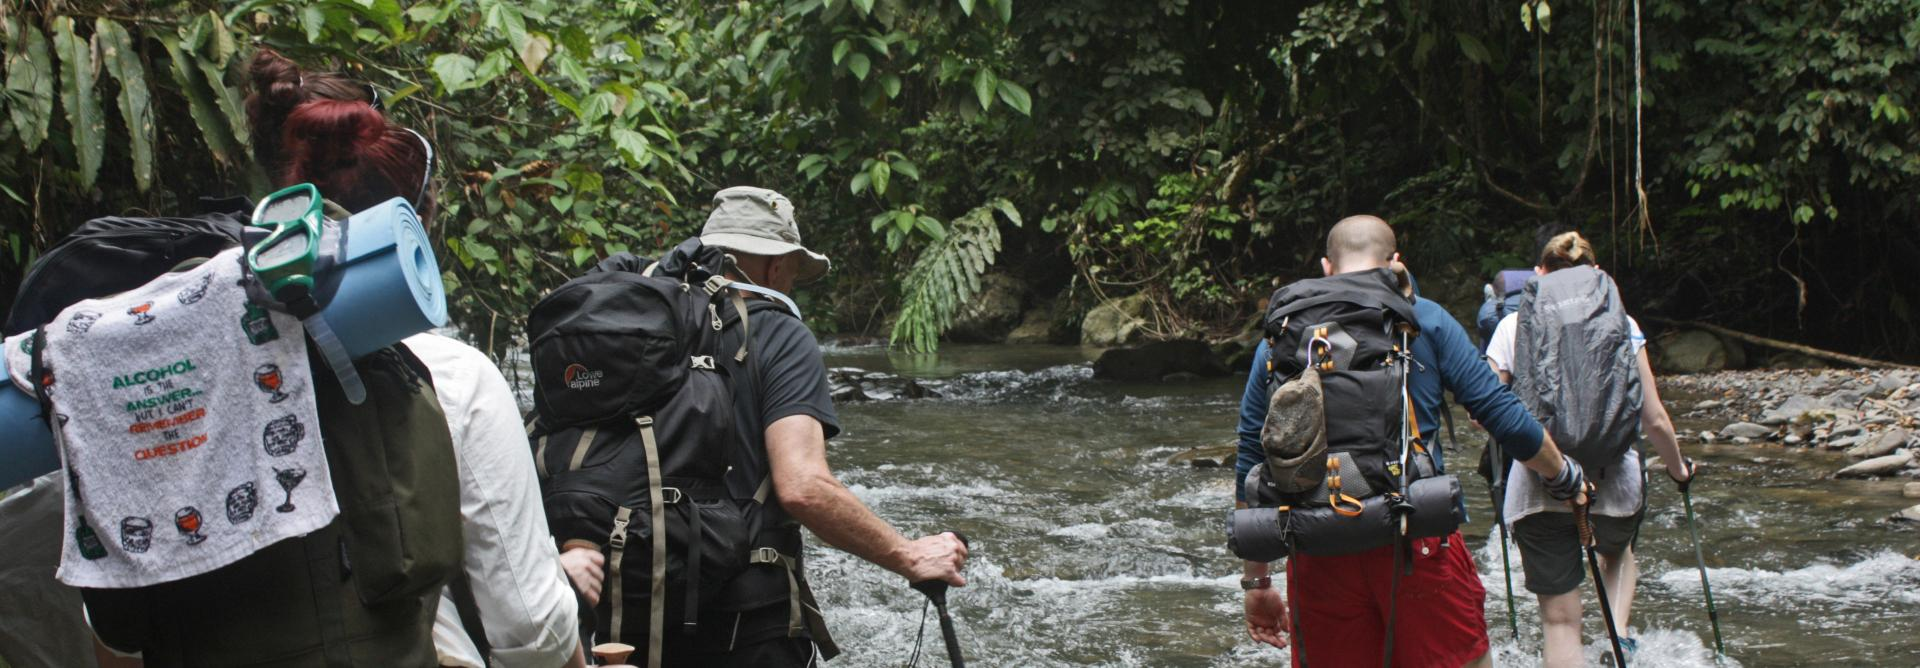 Sumatra Jungle Charity Trek in Indonesia